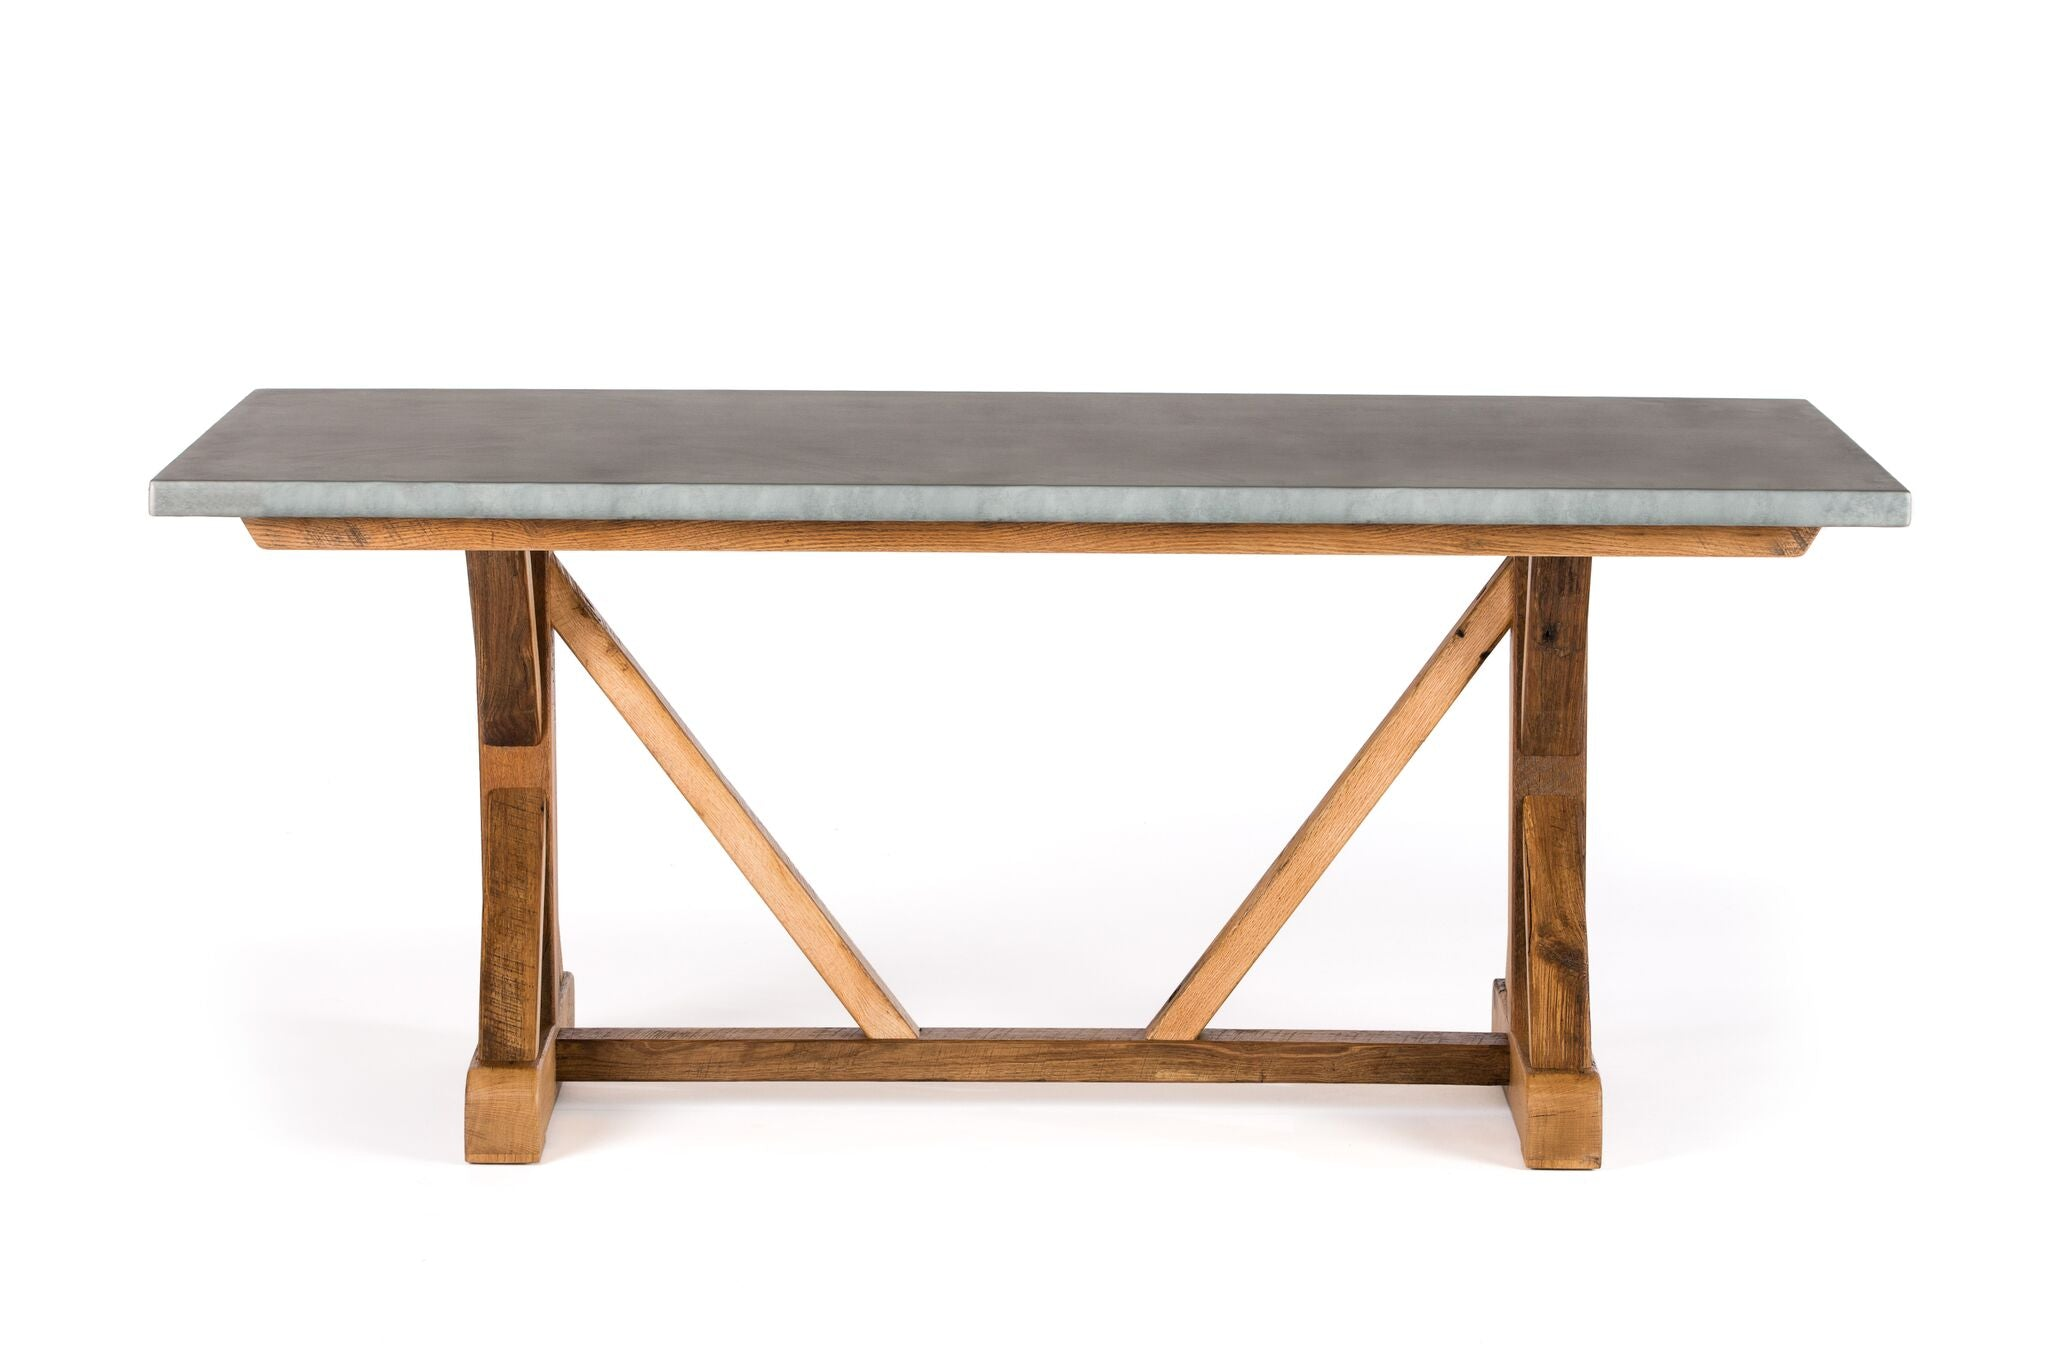 Zinc Rectangular Table | French Trestle Table | CLASSIC | Americana on Reclaimed Oak | CUSTOM SIZE L 96 W 39 H 30 | 2"